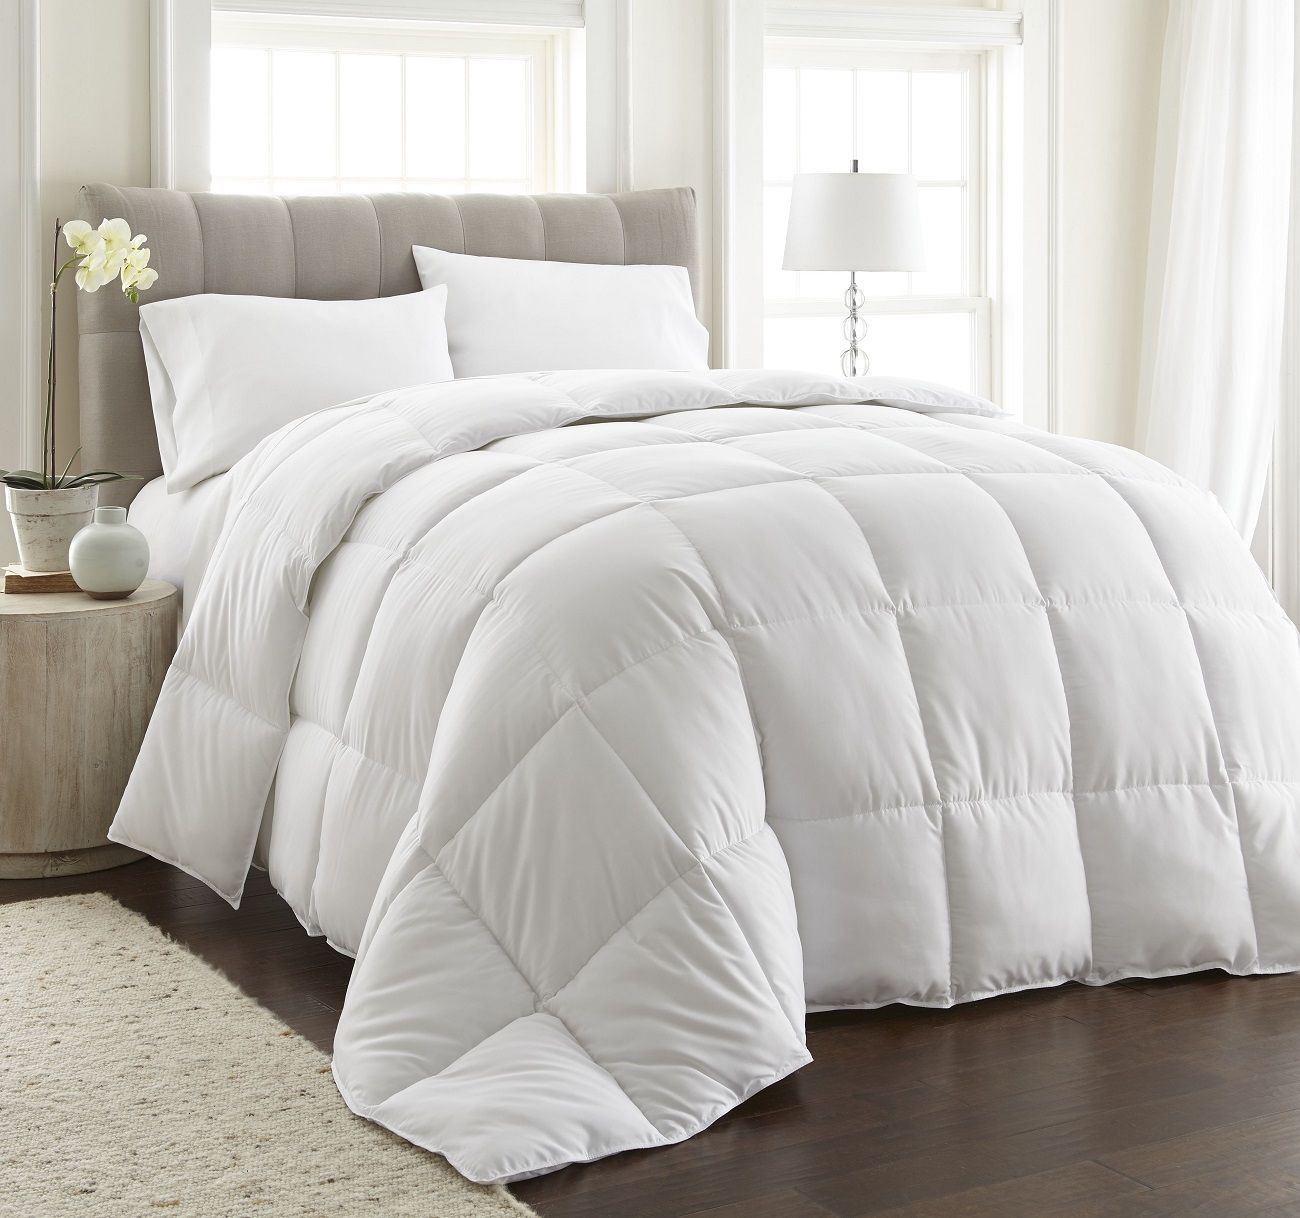 Ultra Medium Light Warmth Down Alternative Comforter W Space Saver Storage Bag Bed Comforters Duvet Comforters White Comforter